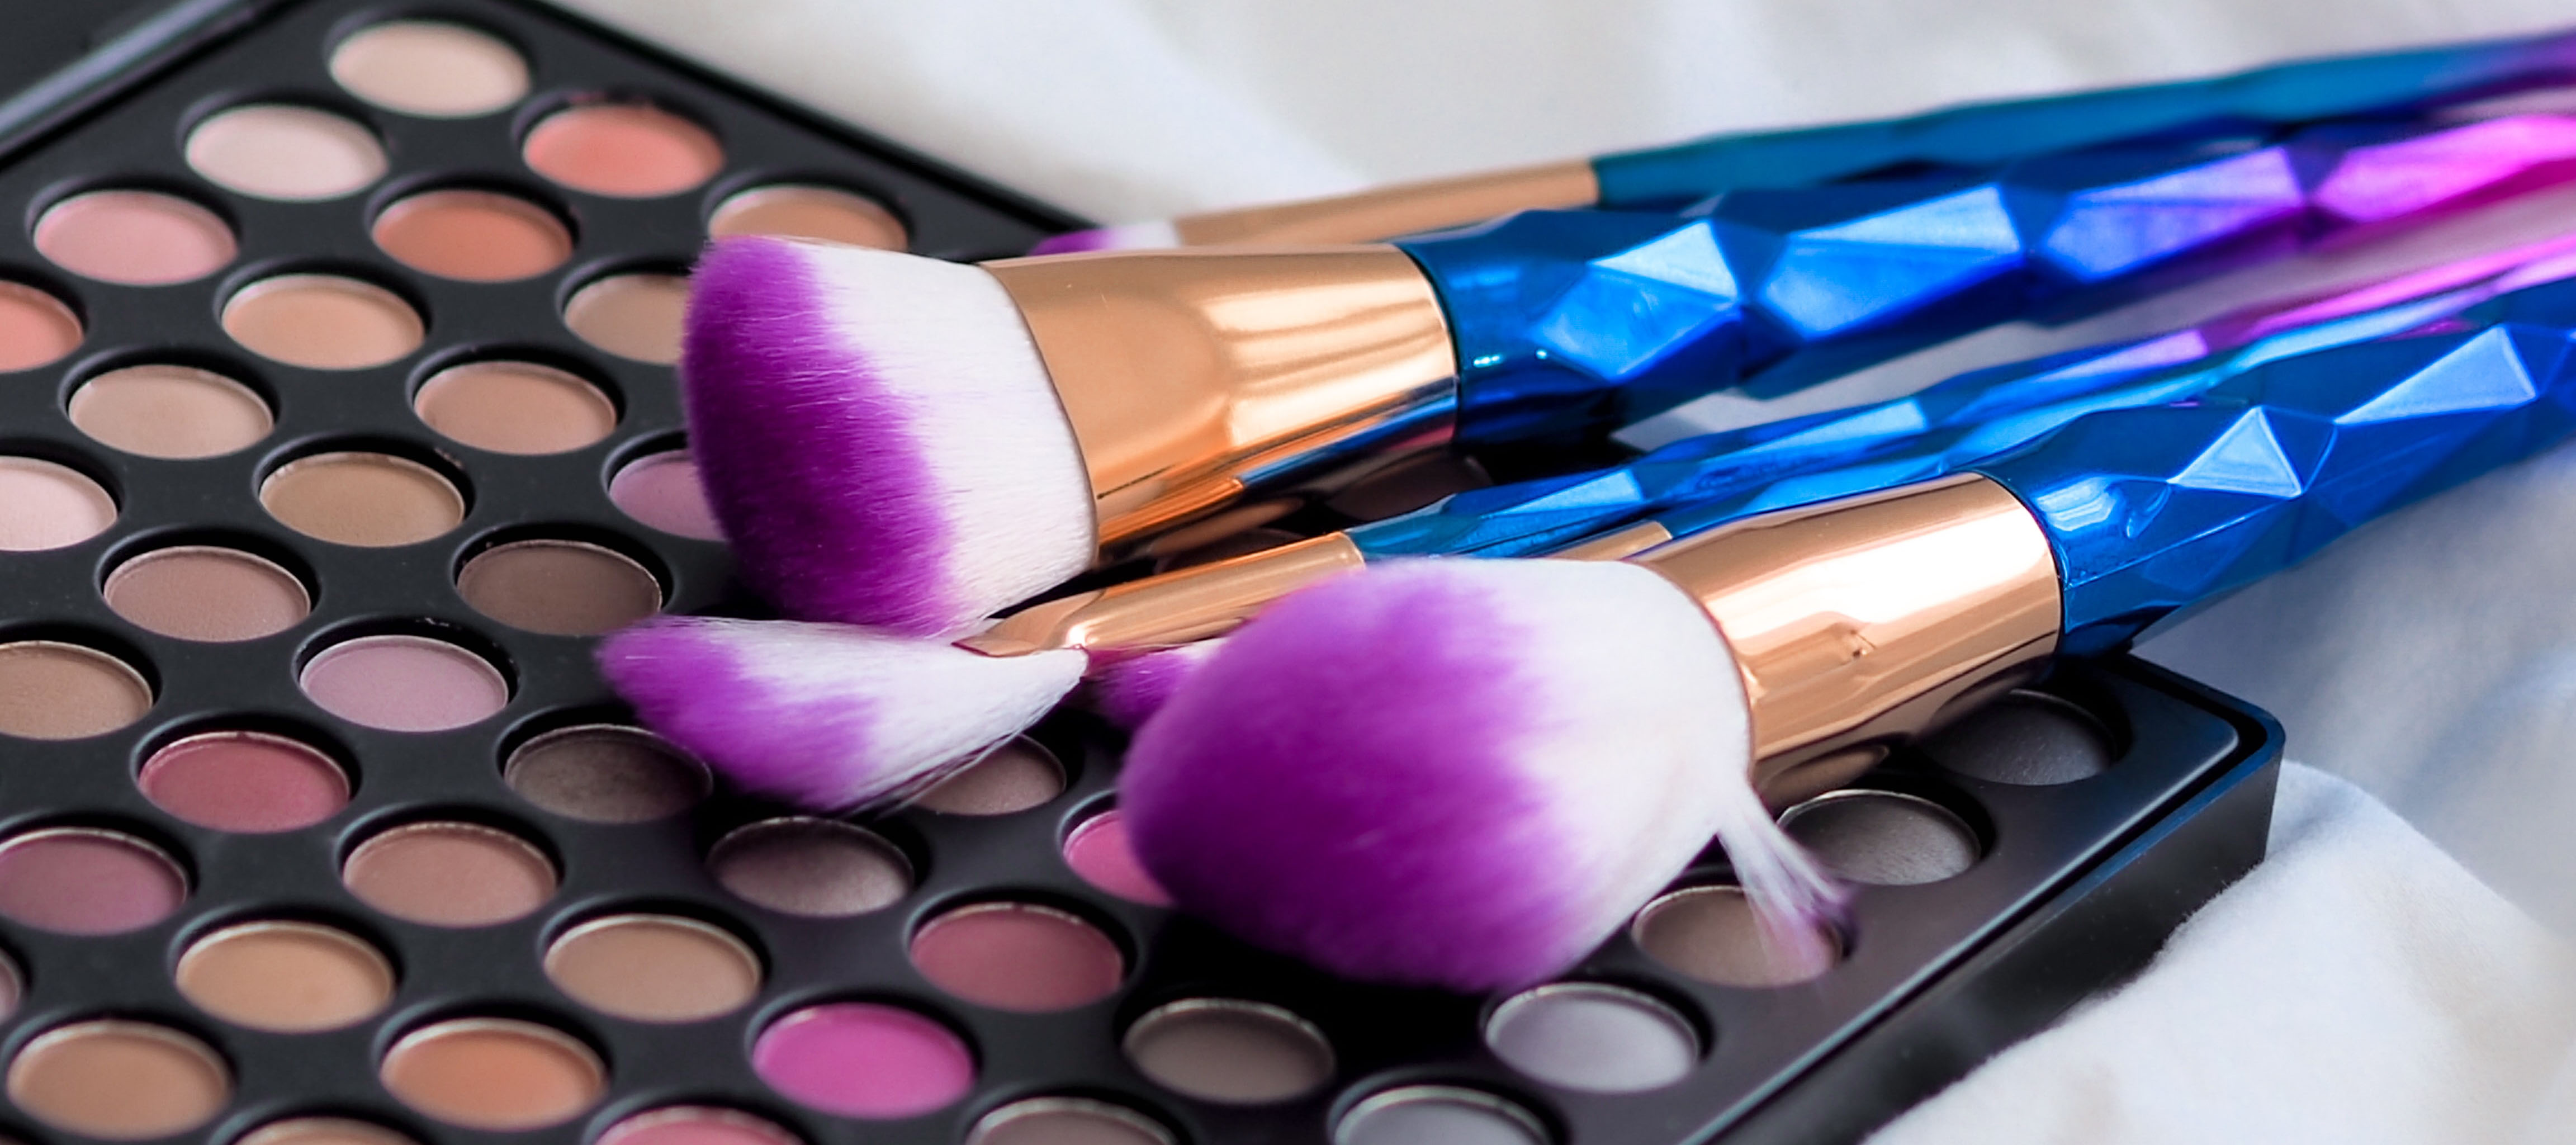 Cosmetic brushes on a colorful makeup palette.